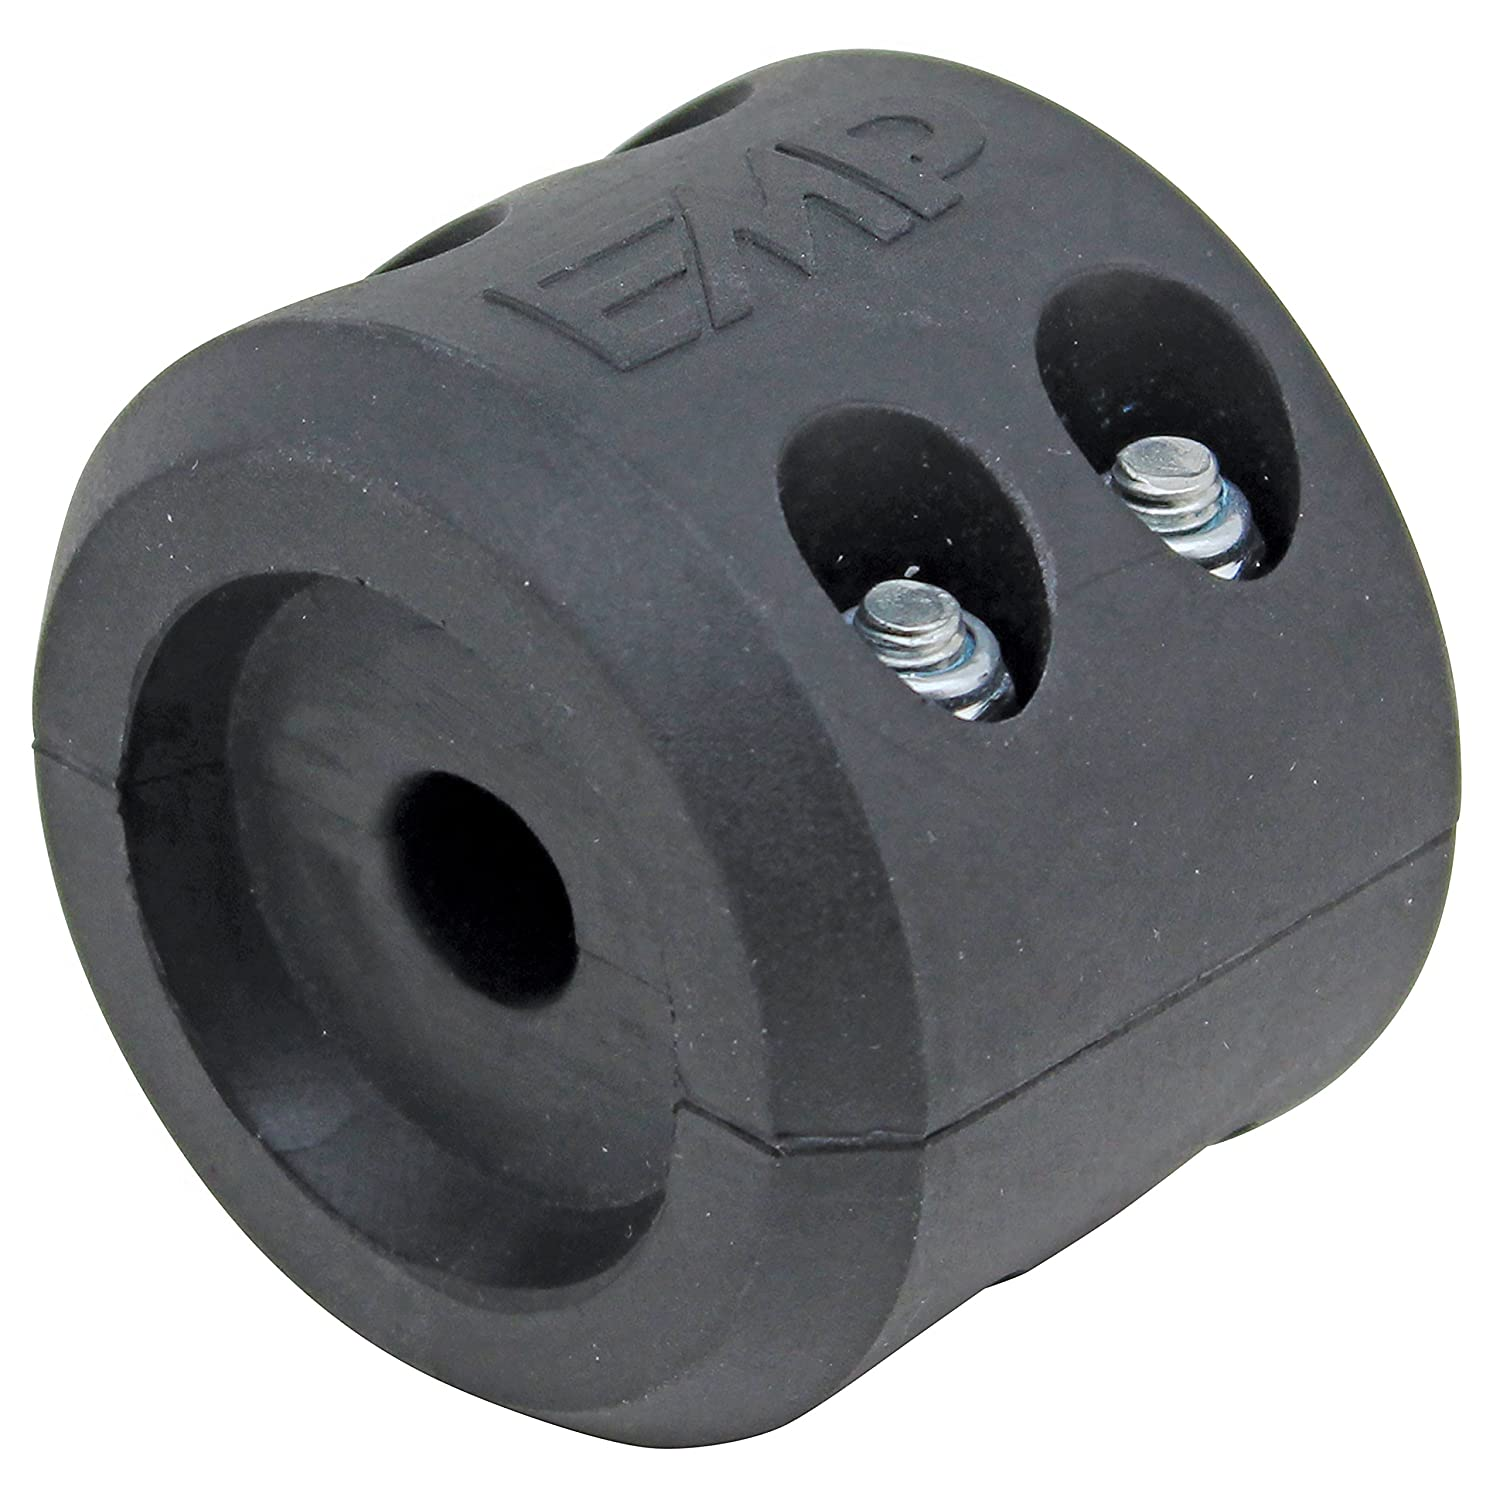 Extreme Max 5600.3192 2-Piece Quick-Install Hook Stopper & Line Saver for ATV/UTV Winches